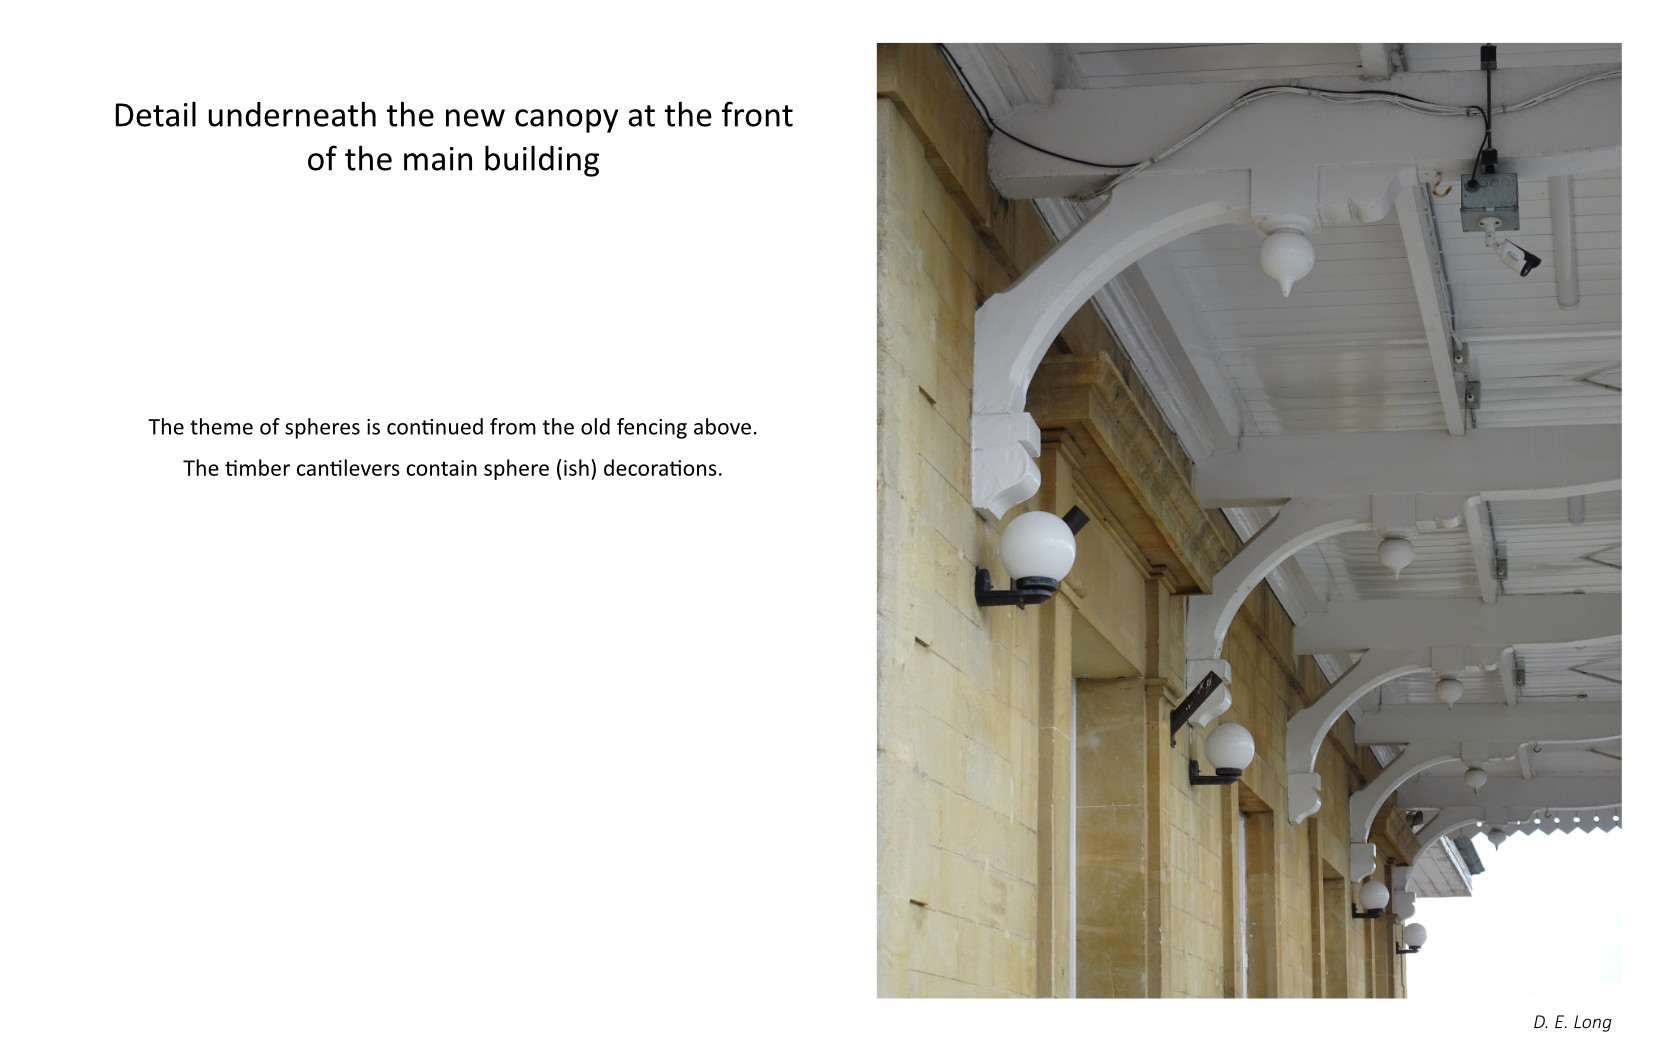 Photo looking up toward the station roof showing detail. Caption, detail underneath the new canopy at the front of the main building . The theme of spheres is continued from the old fencing above . The timber cantilevers contain speherish decorations.